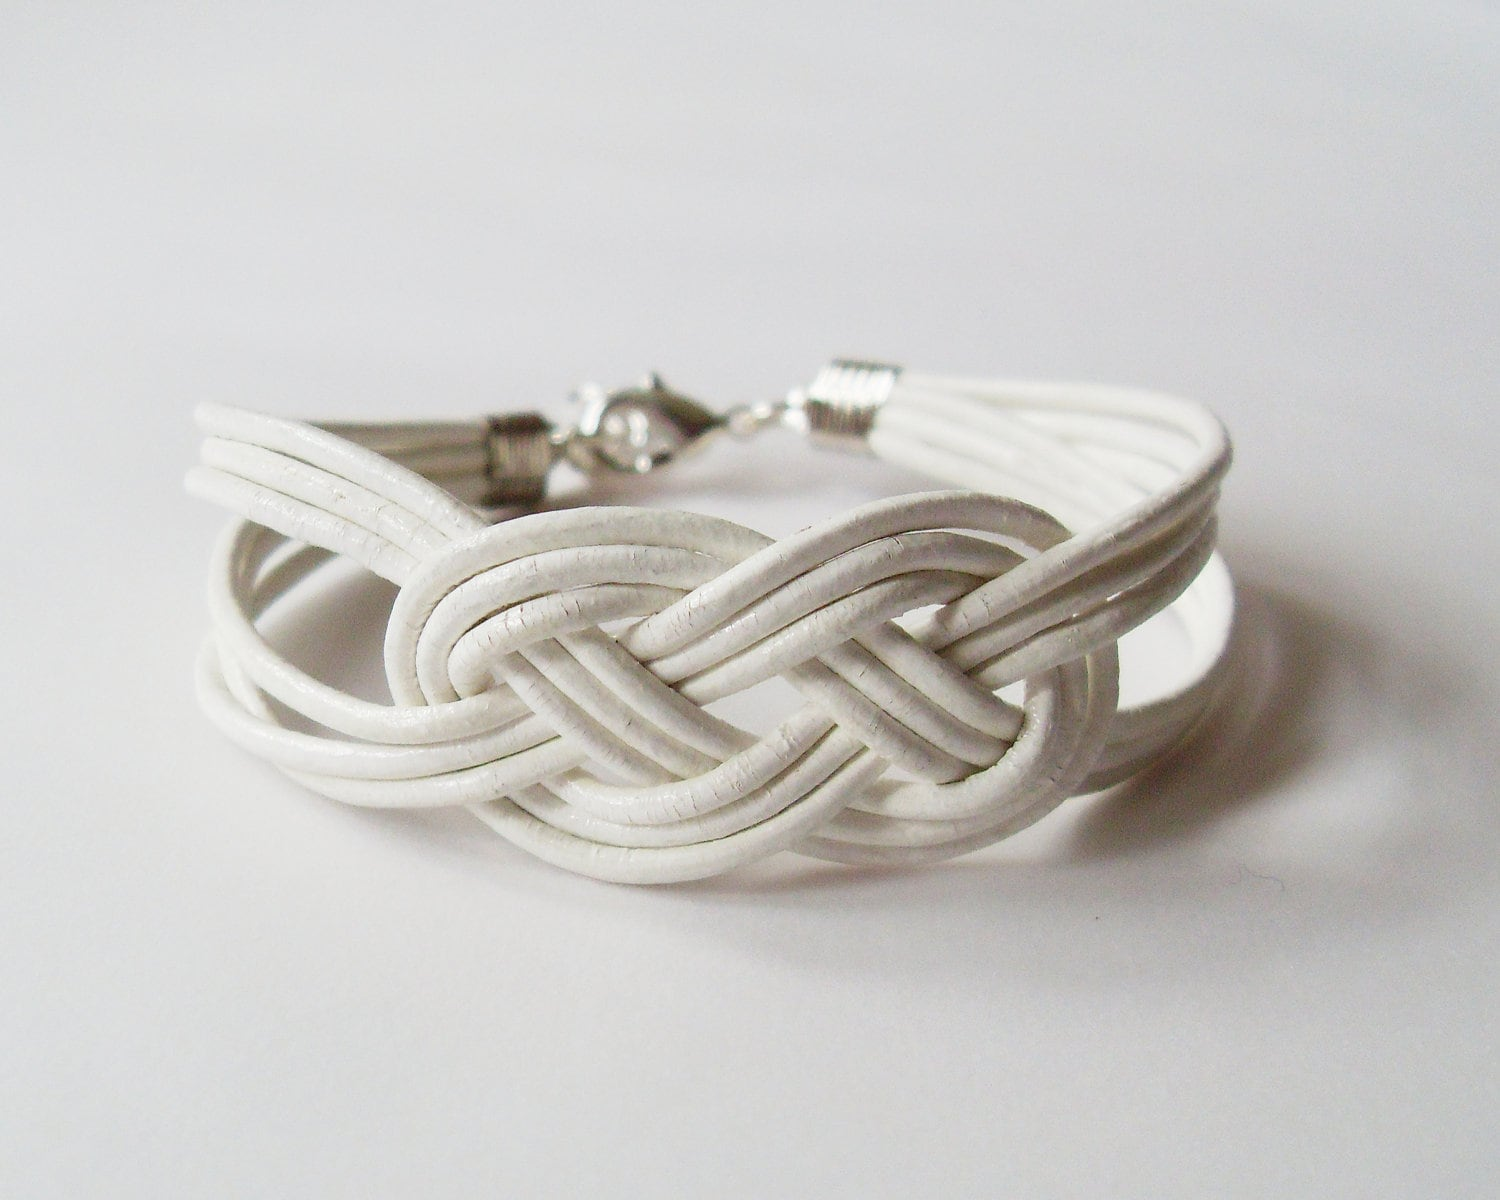 leather sailor knot bracelet white leather by starryday